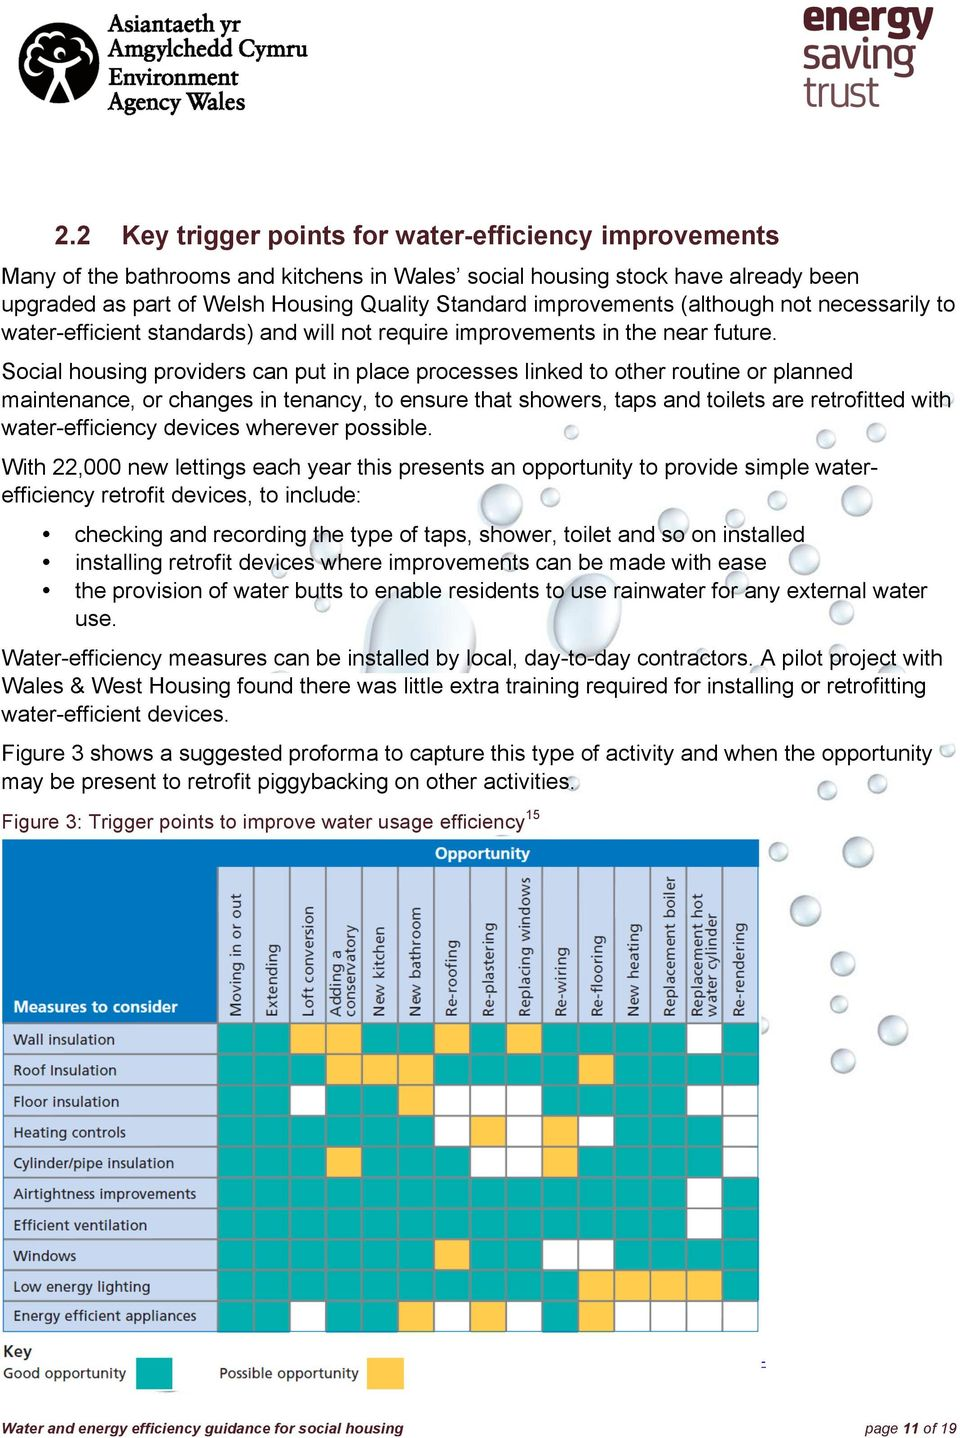 Social housing providers can put in place processes linked to other routine or planned maintenance, or changes in tenancy, to ensure that showers, taps and toilets are retrofitted with